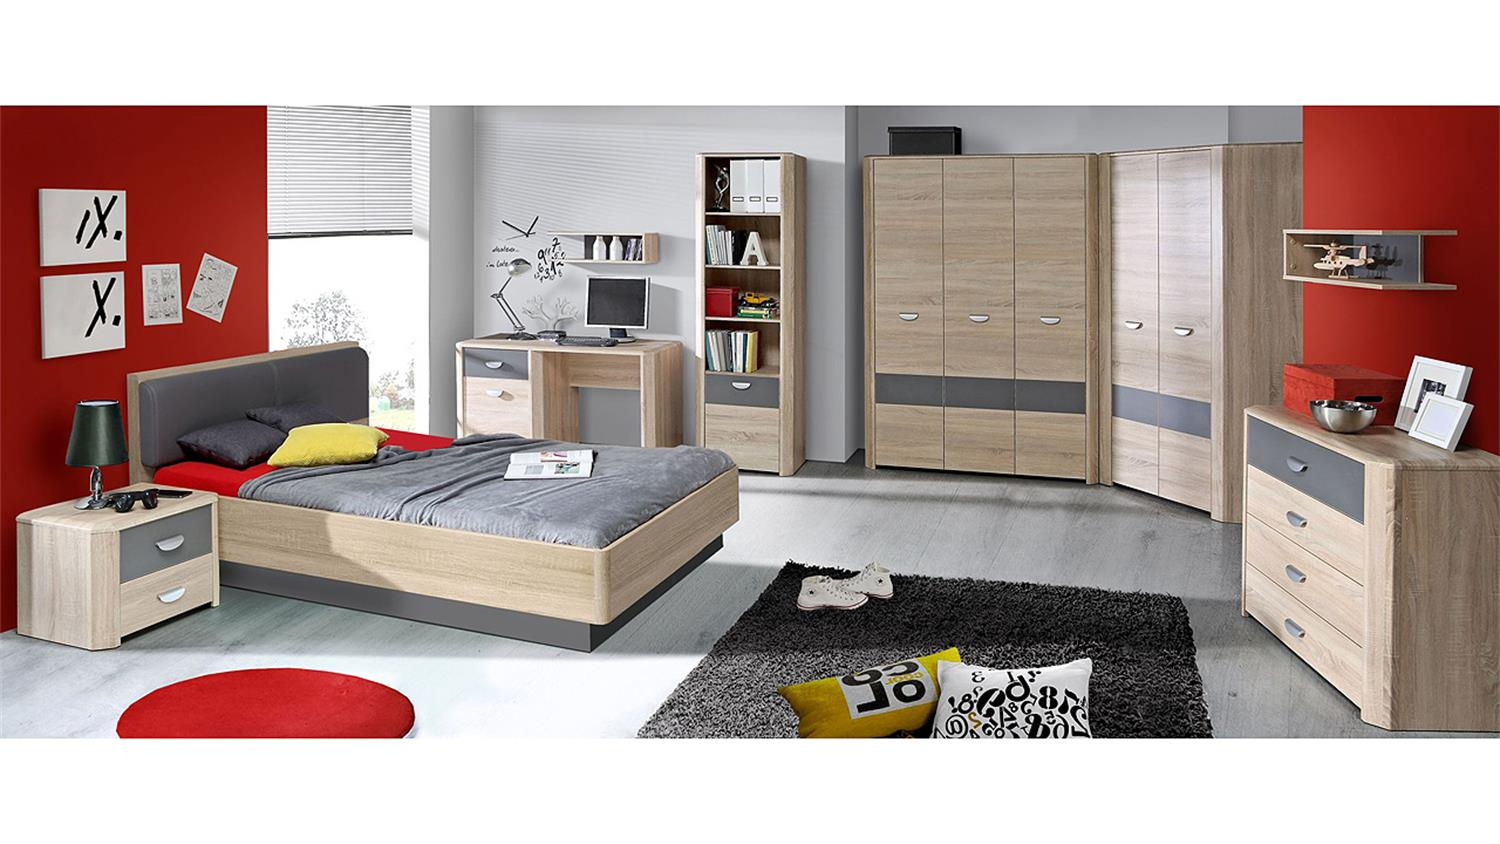 kommode yook sideboard in sonoma eiche grau anthrazit. Black Bedroom Furniture Sets. Home Design Ideas